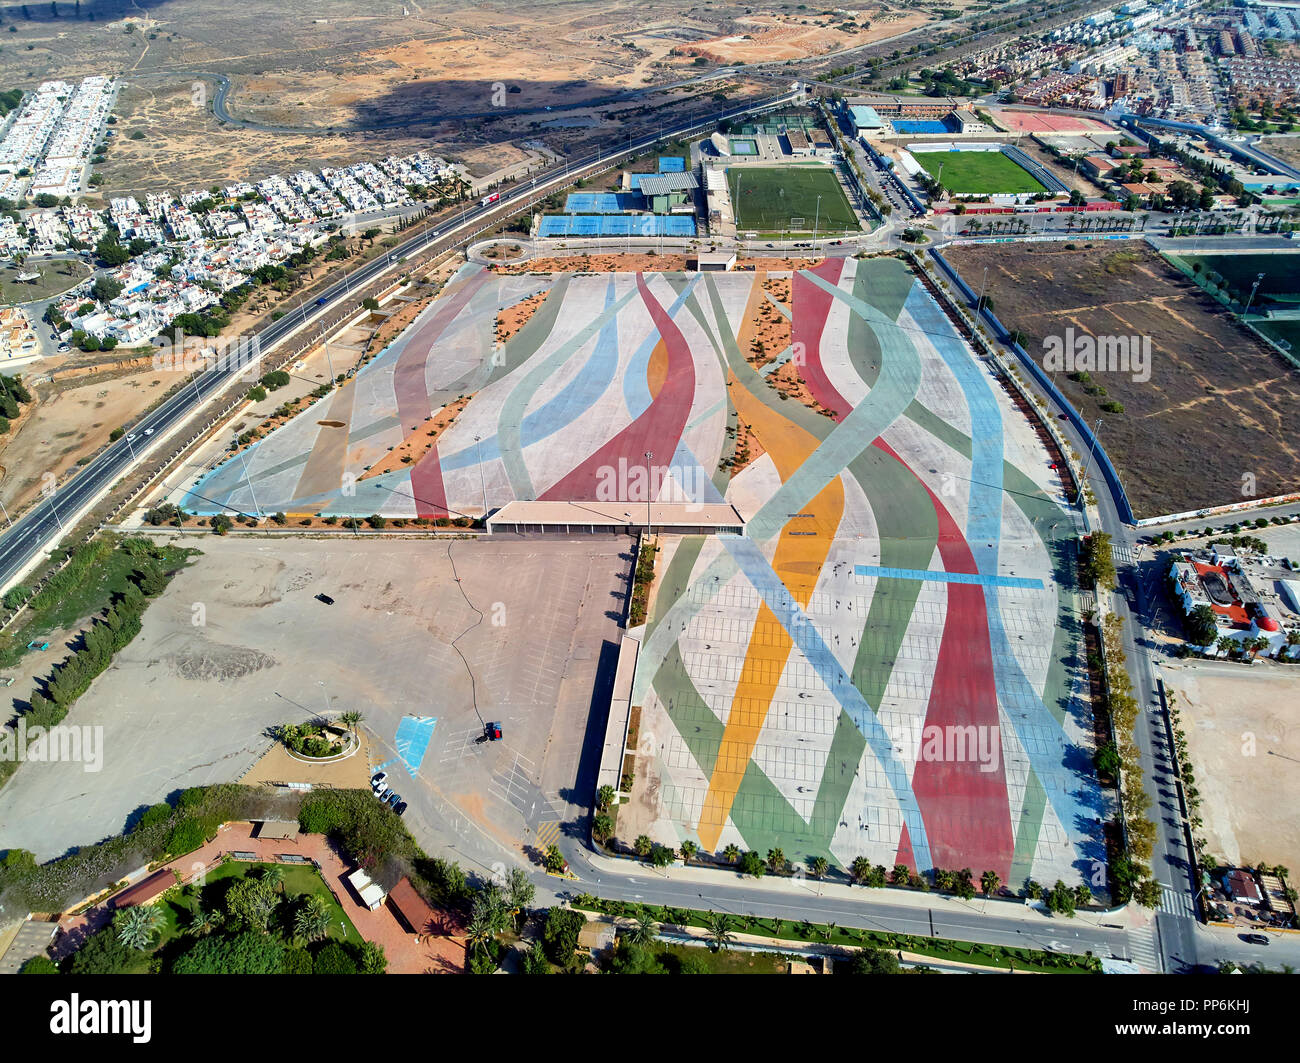 Aerial photography Torrevieja townscape. Above view of empty market parking area, square for transport. Torrevieja. Costa Blanca. Spain - Stock Image